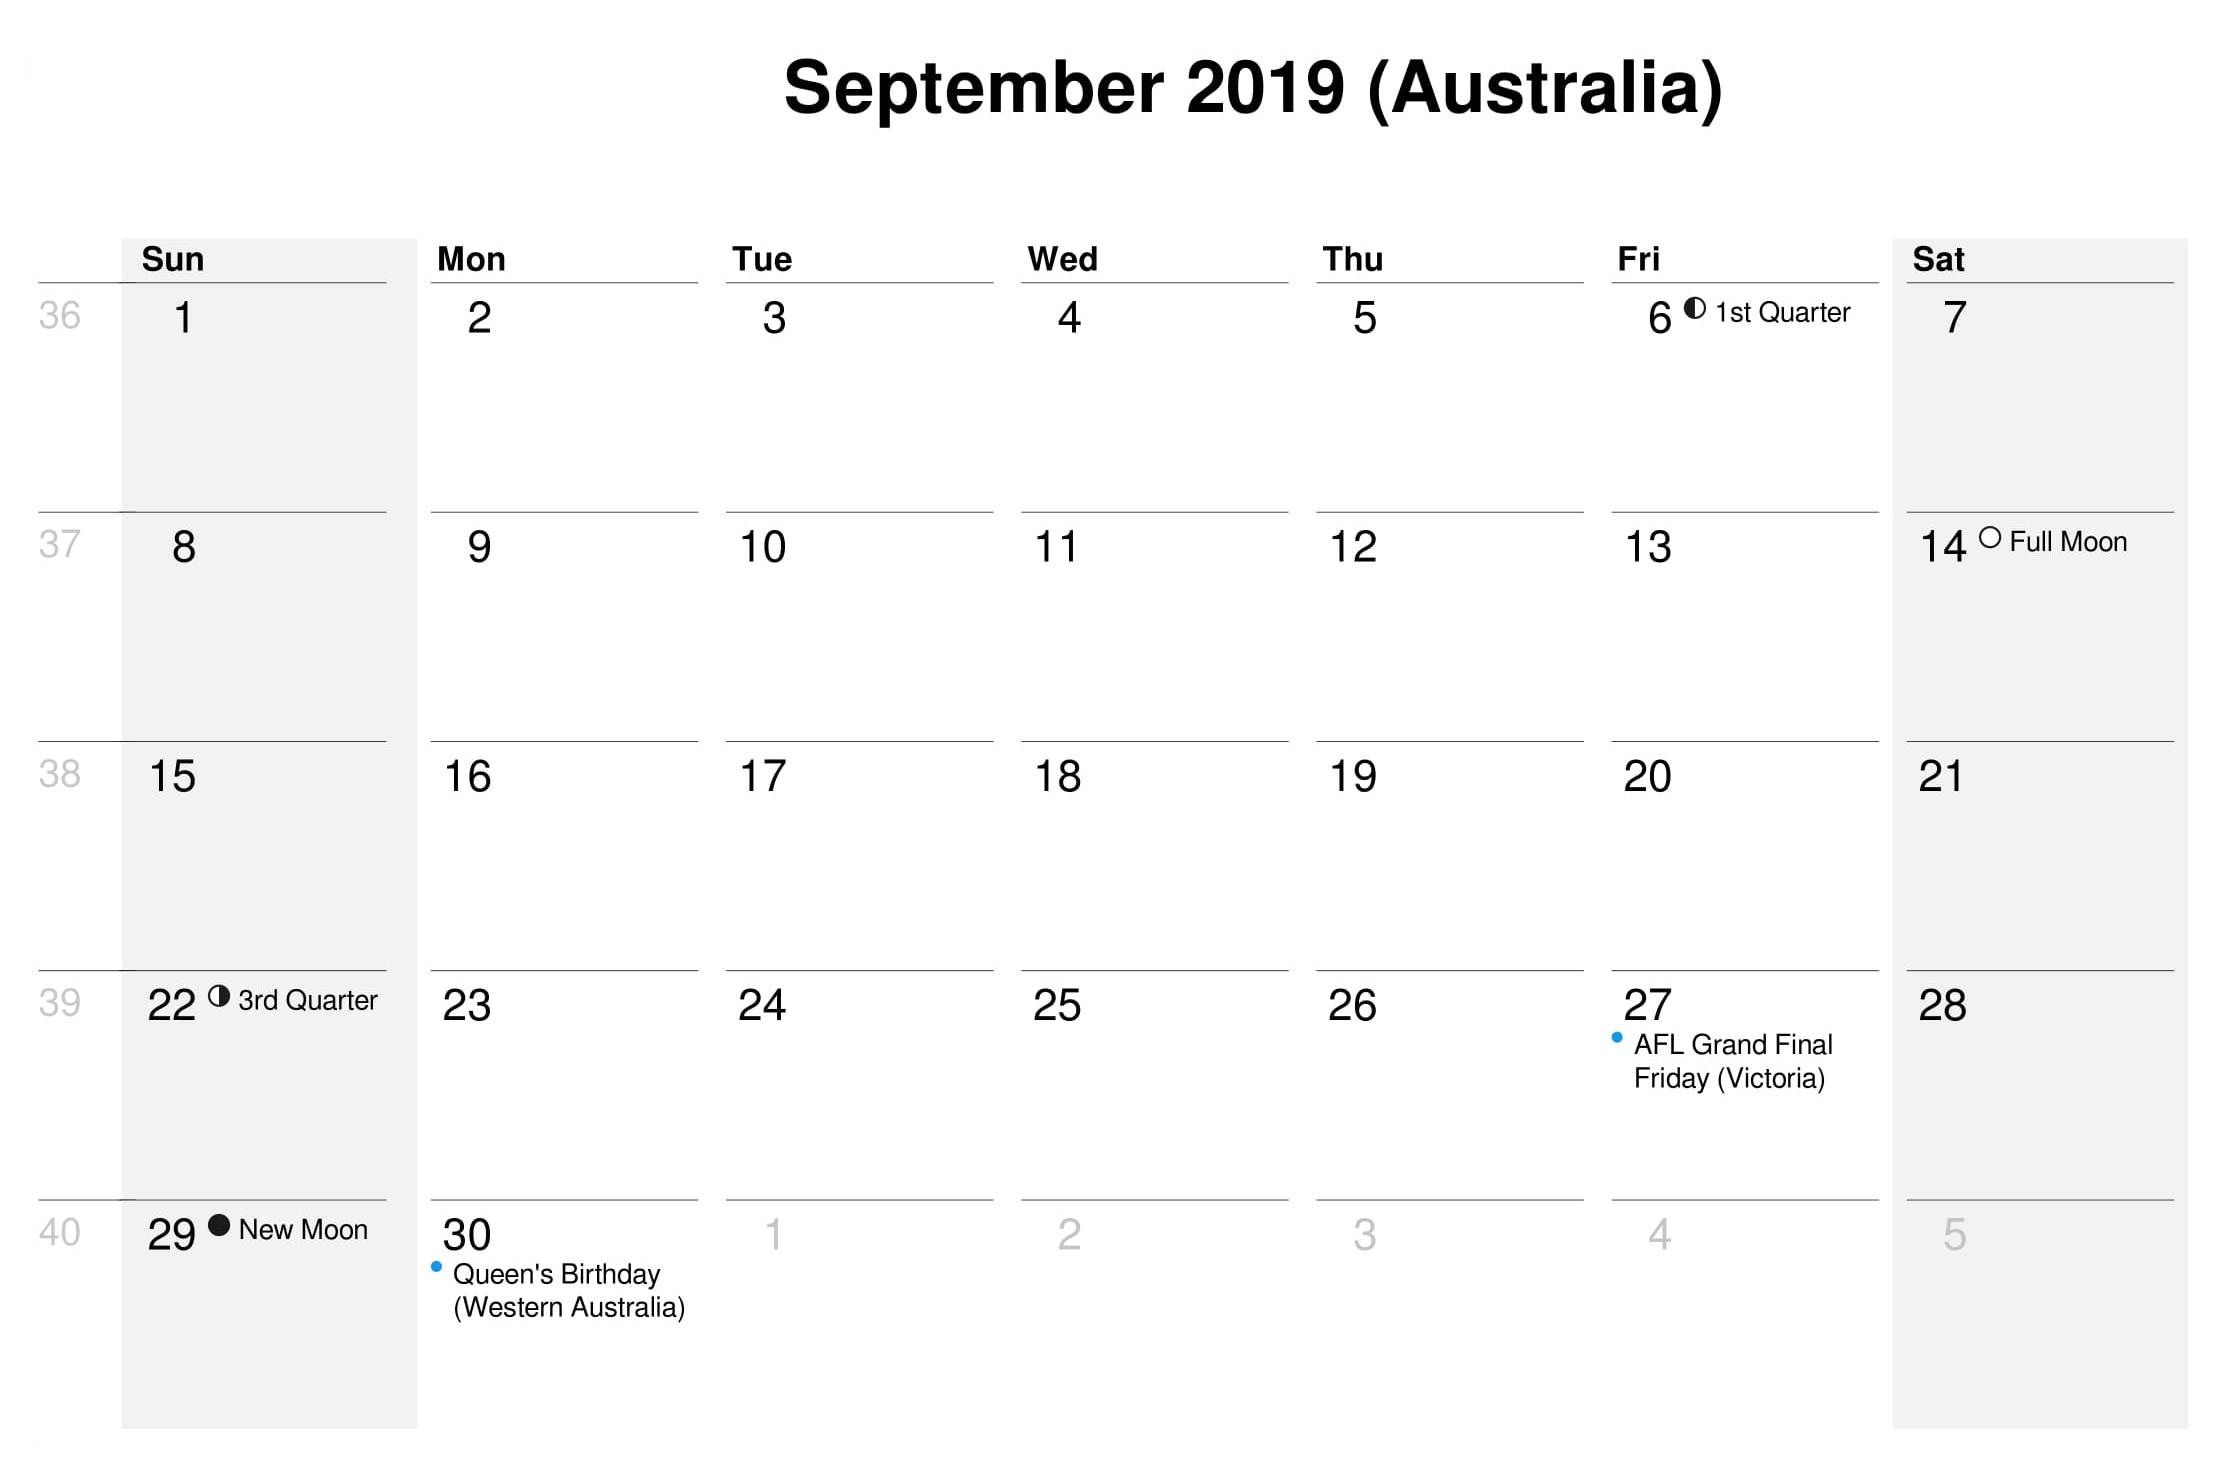 September 2019 Calendar with Holidays Australia